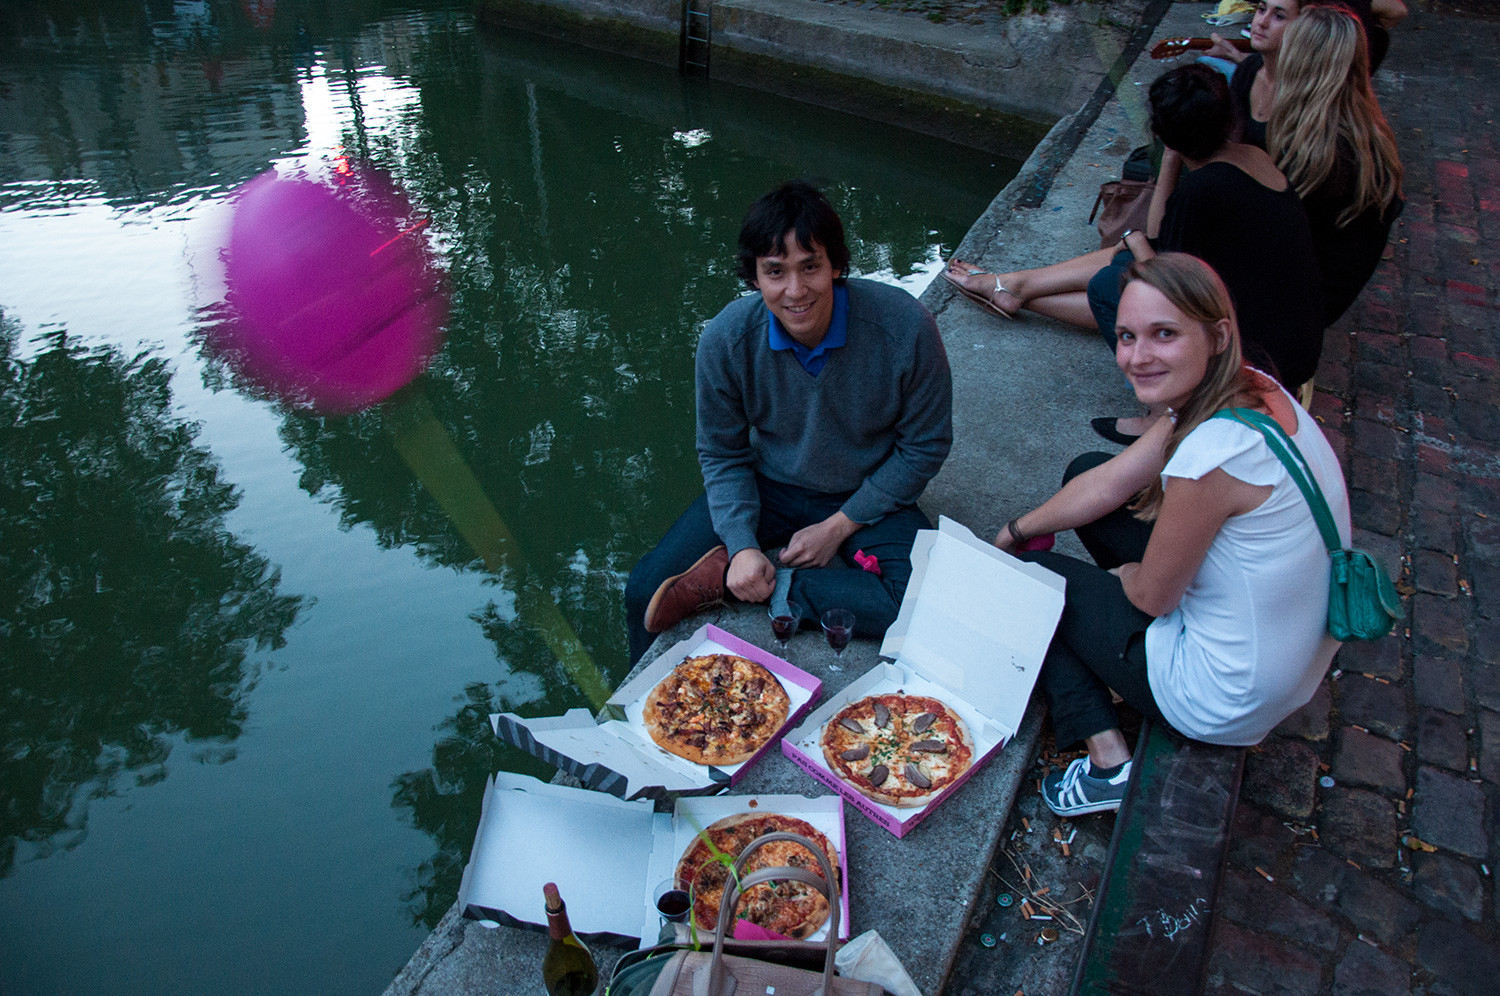 Pink Flamingo Pizza by Canal Saint-Martin